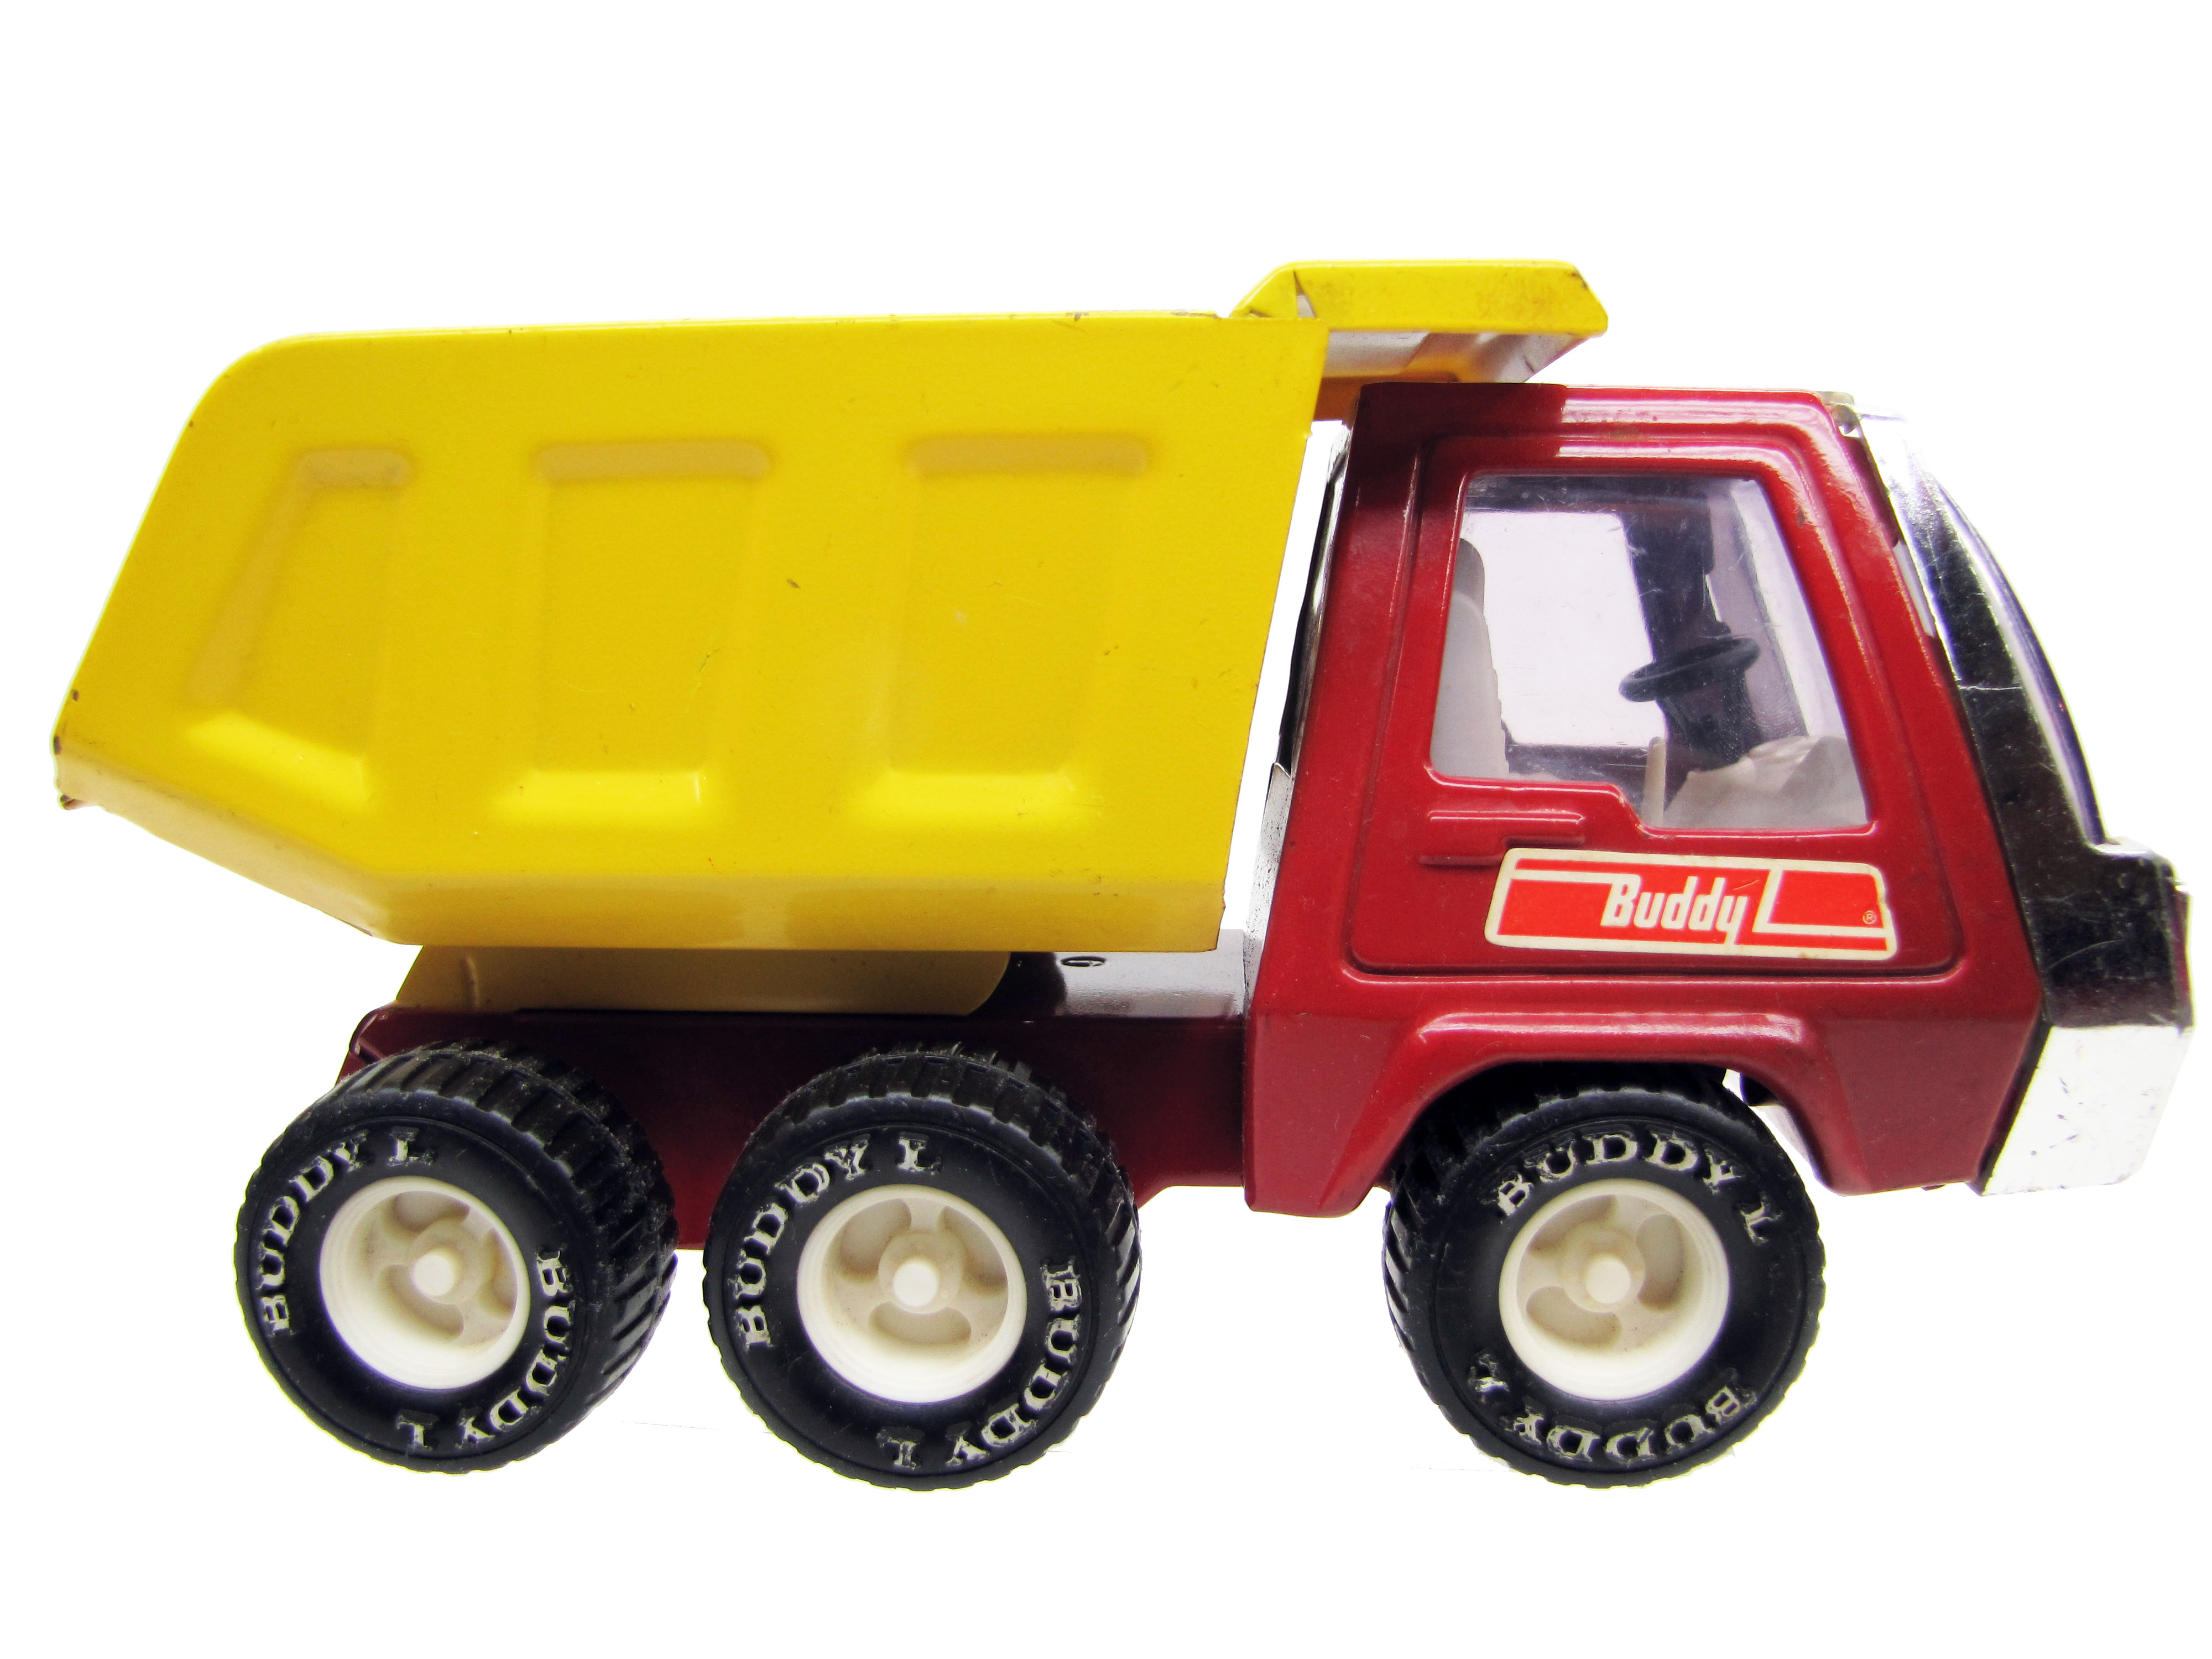 1970's Vintage Buddy L Red and Yellow Six Wheel Dump Truck NICE